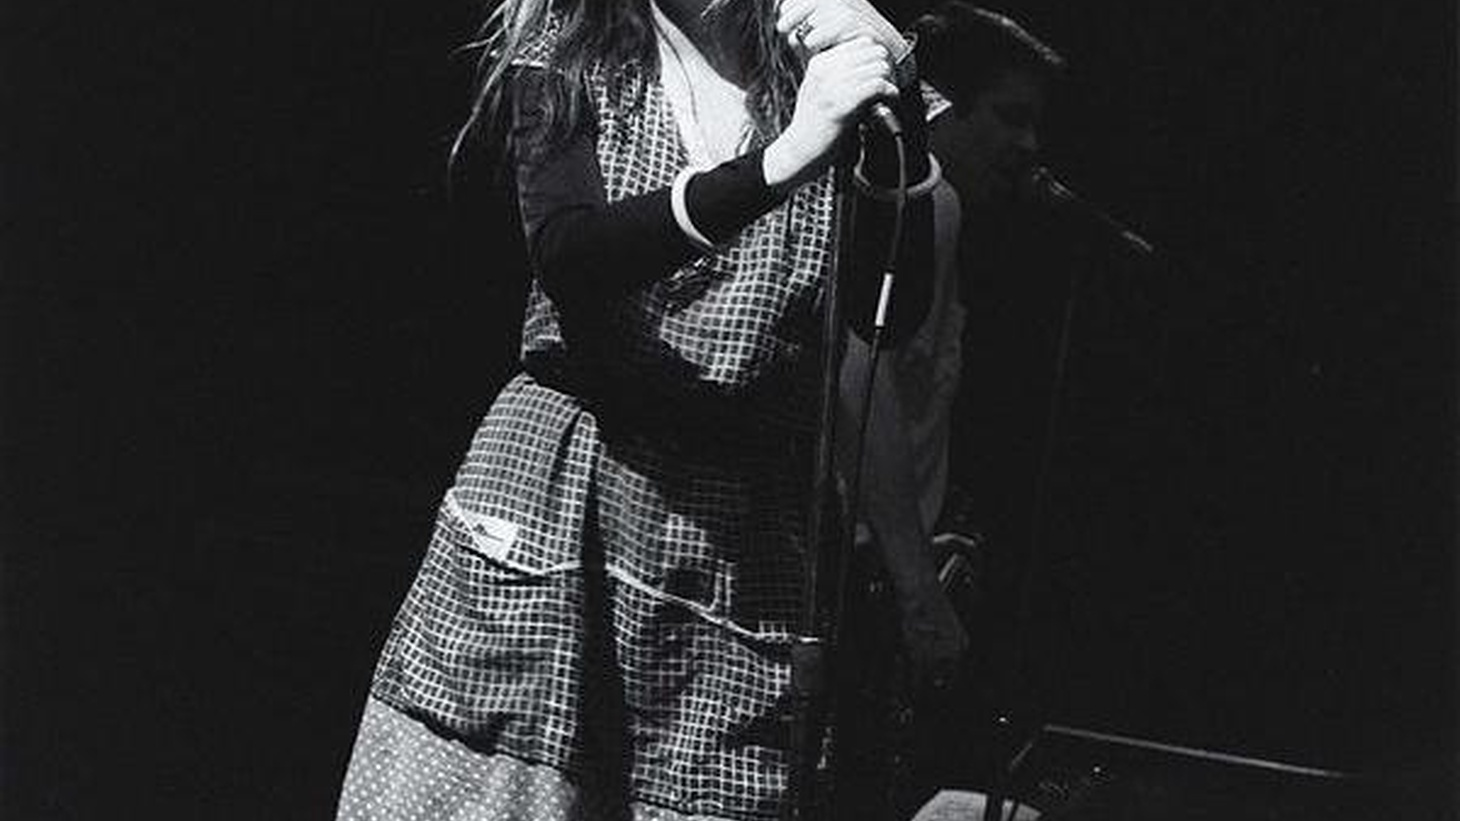 L.A. punk rocker and founding member of X, Exene Cervenka, returns to KCRW armed a batch up poetic songs from her new solo project on Morning Becomes Eclectic at 11:15am.